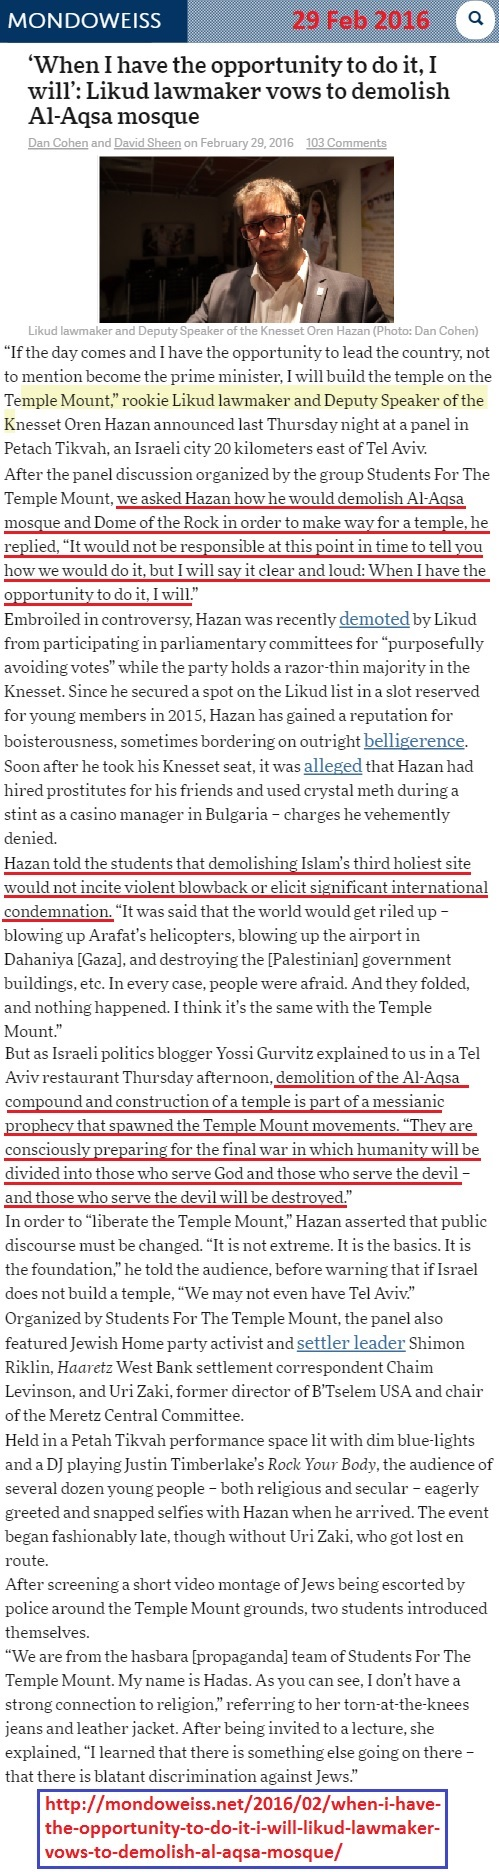 https://mondoweiss.net/2016/02/when-i-have-the-opportunity-to-do-it-i-will-likud-lawmaker-vows-to-demolish-al-aqsa-mosque/